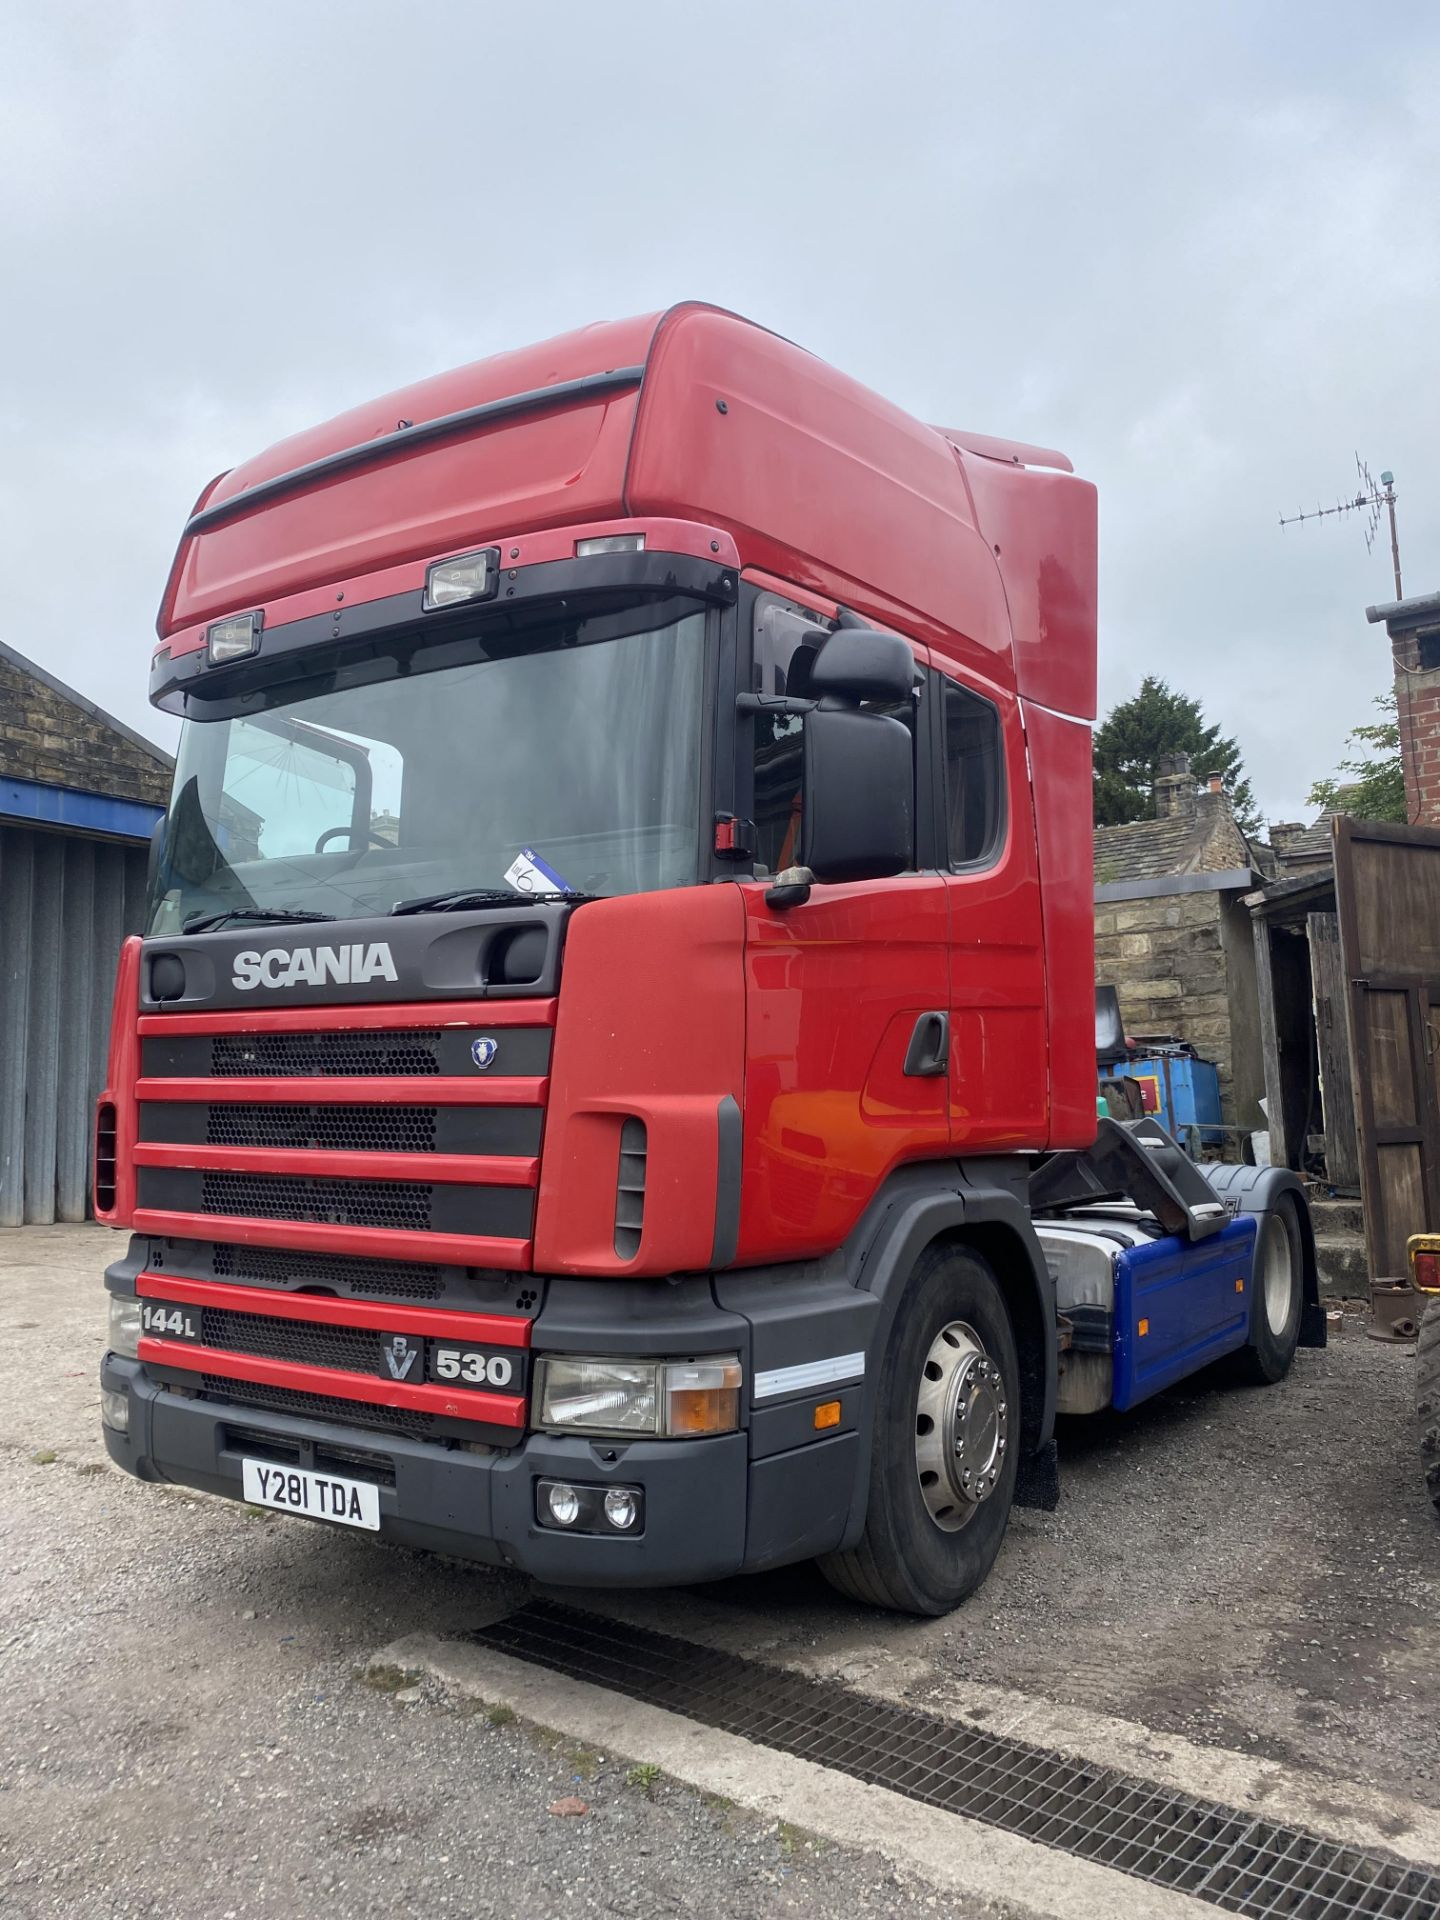 Scania 144 530 4X2 CLASSIC TRACTOR UNIT, registration no. Y281 TDA, date first registered 01/03/ - Image 2 of 19